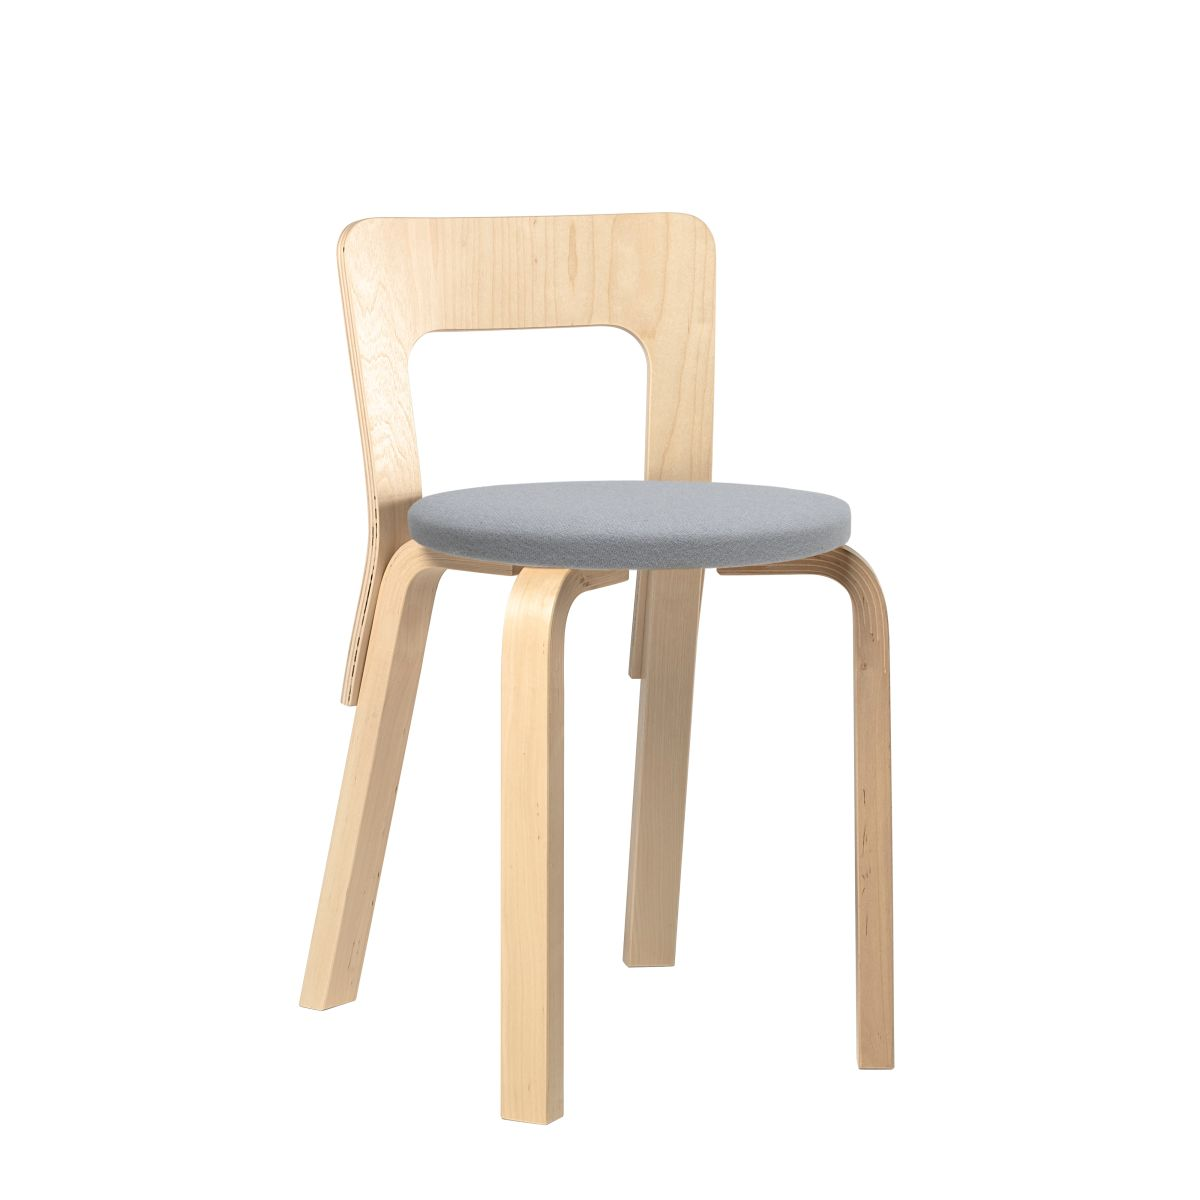 Chair-65-birch-seat-fabric-upholstery_F-2912685